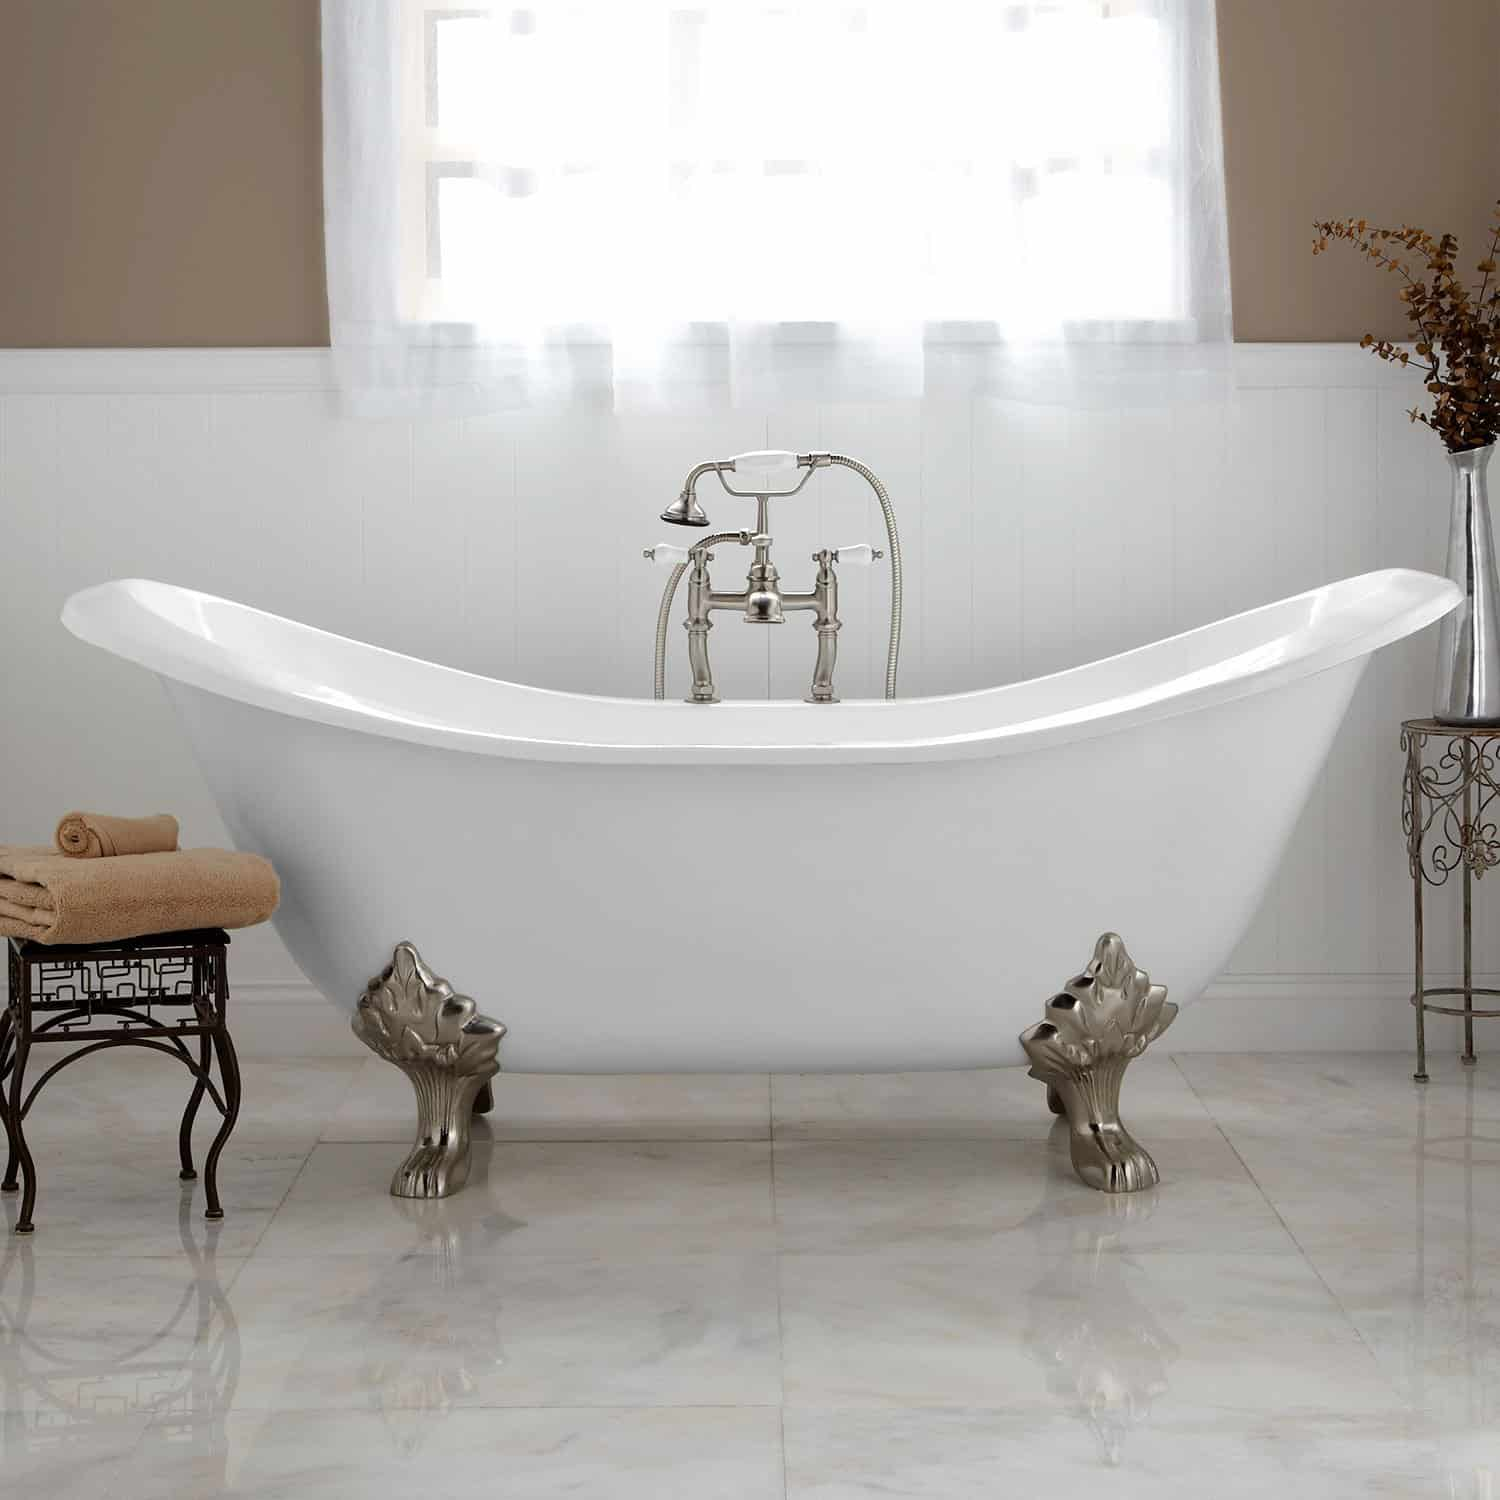 Awesome Bath Tub Paint Big Bathtub Repair Contractor Shaped Painting A Tub Can I Paint My Bathtub Old Can You Paint A Tub Red Paint A Tub